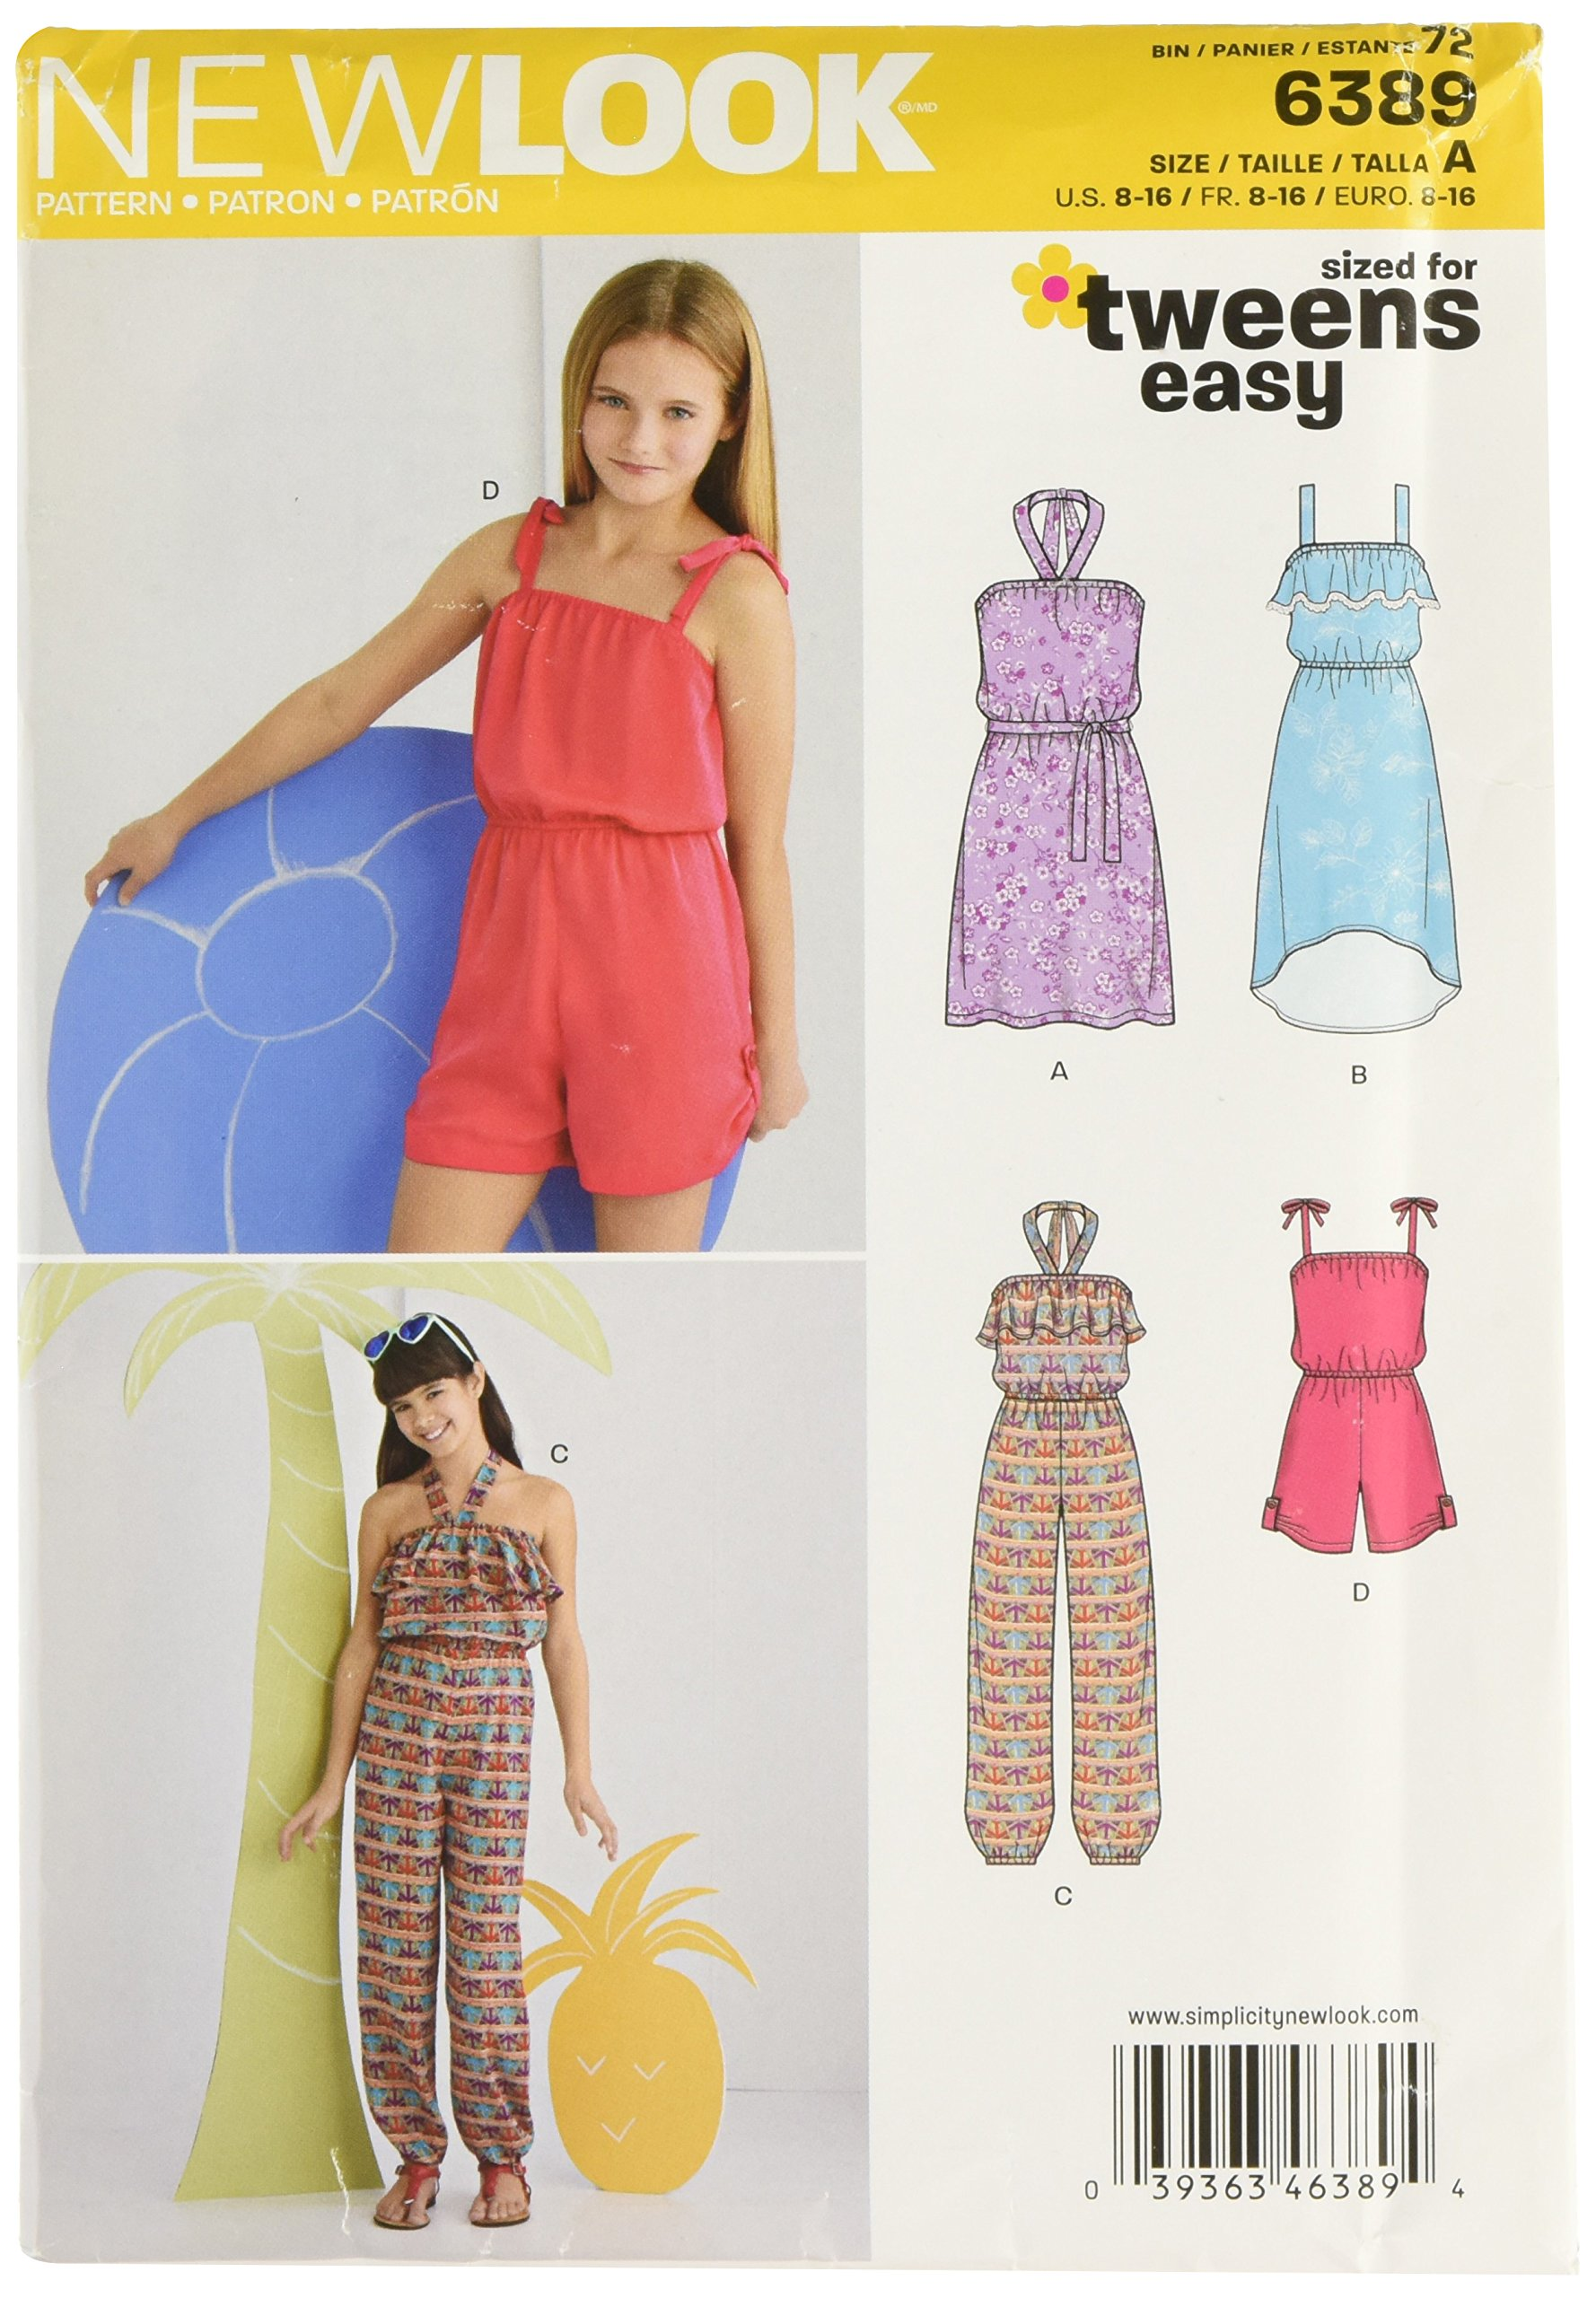 8102 Simplicity Creative Patterns Simplicity Patterns Childs Easy-to-Sew Sundress and Kitty Tote Size: A 3-4-5-6-7-8